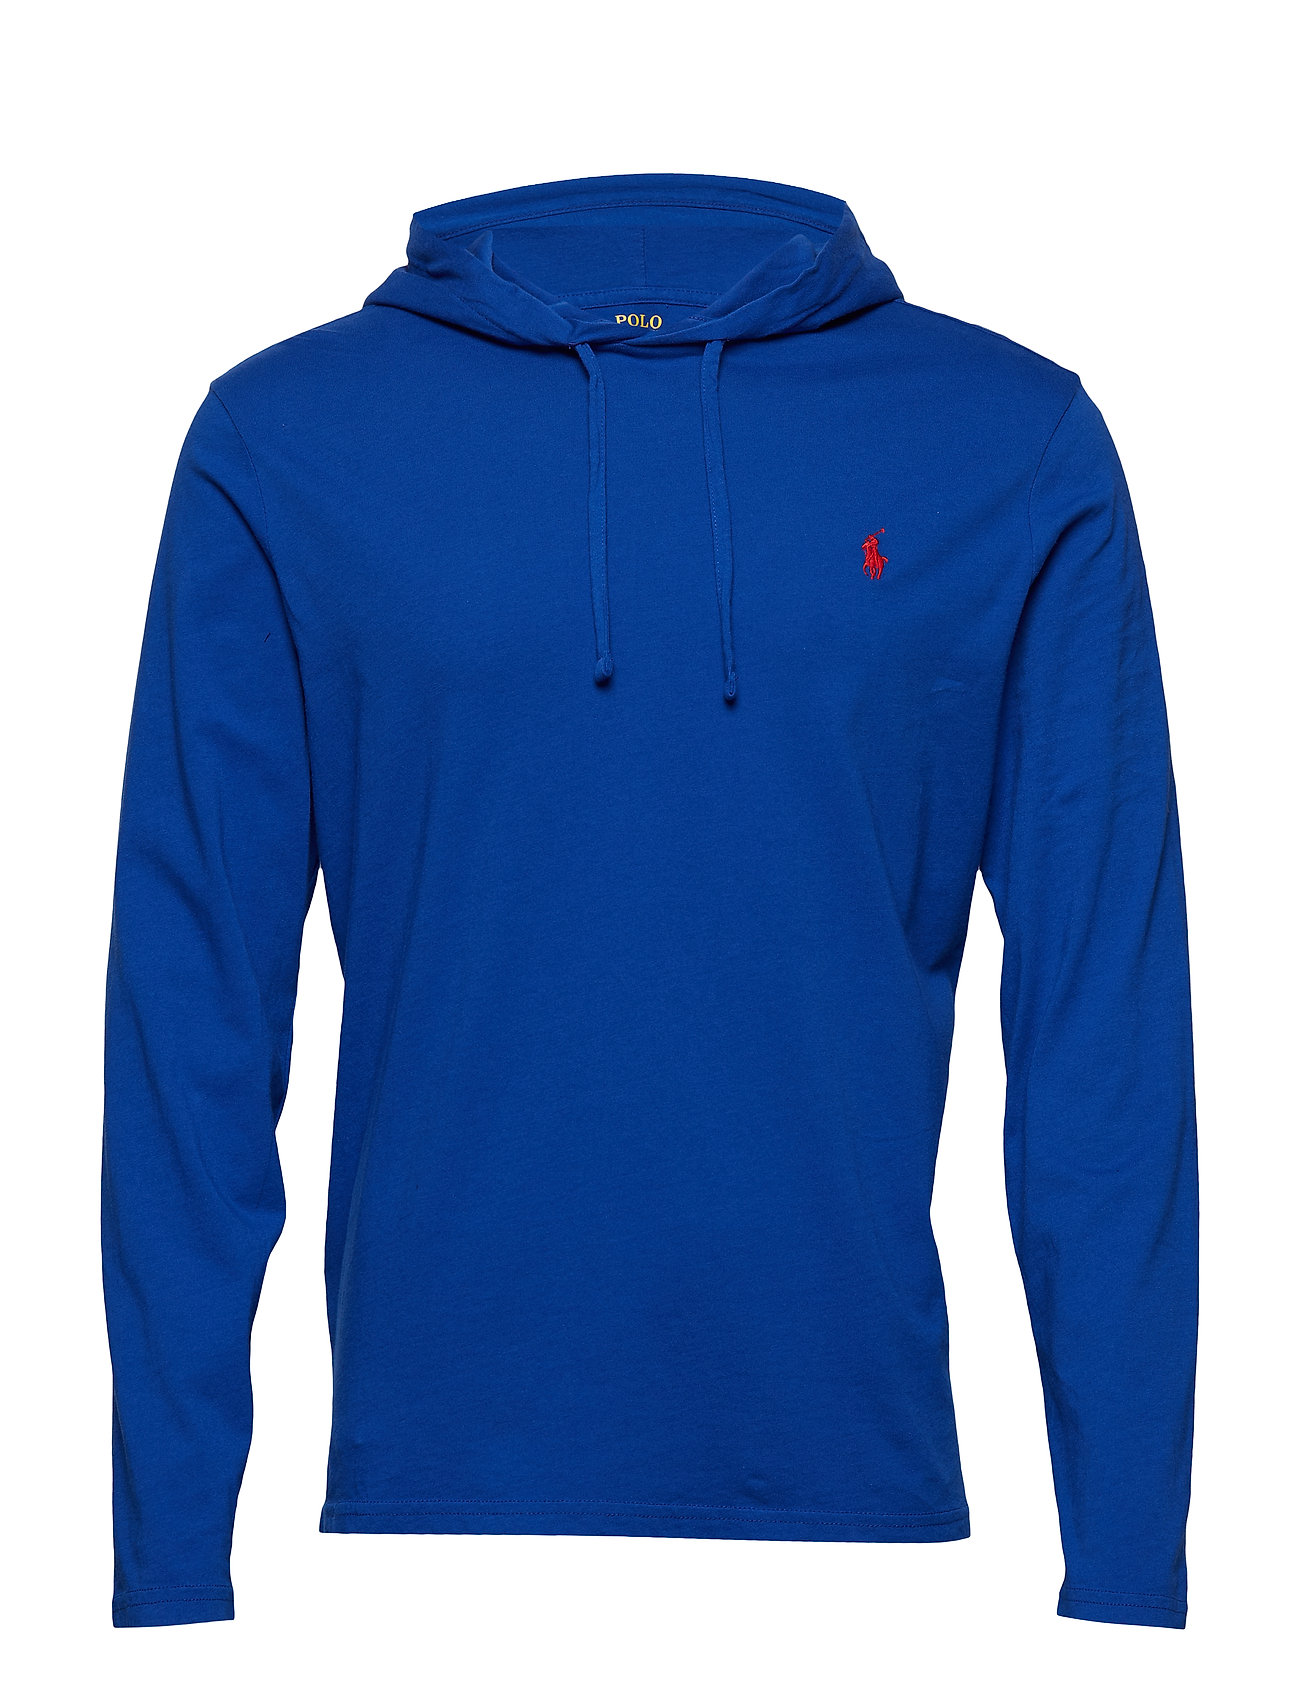 Polo Ralph Lauren Cotton Jersey Hooded T-Shirt